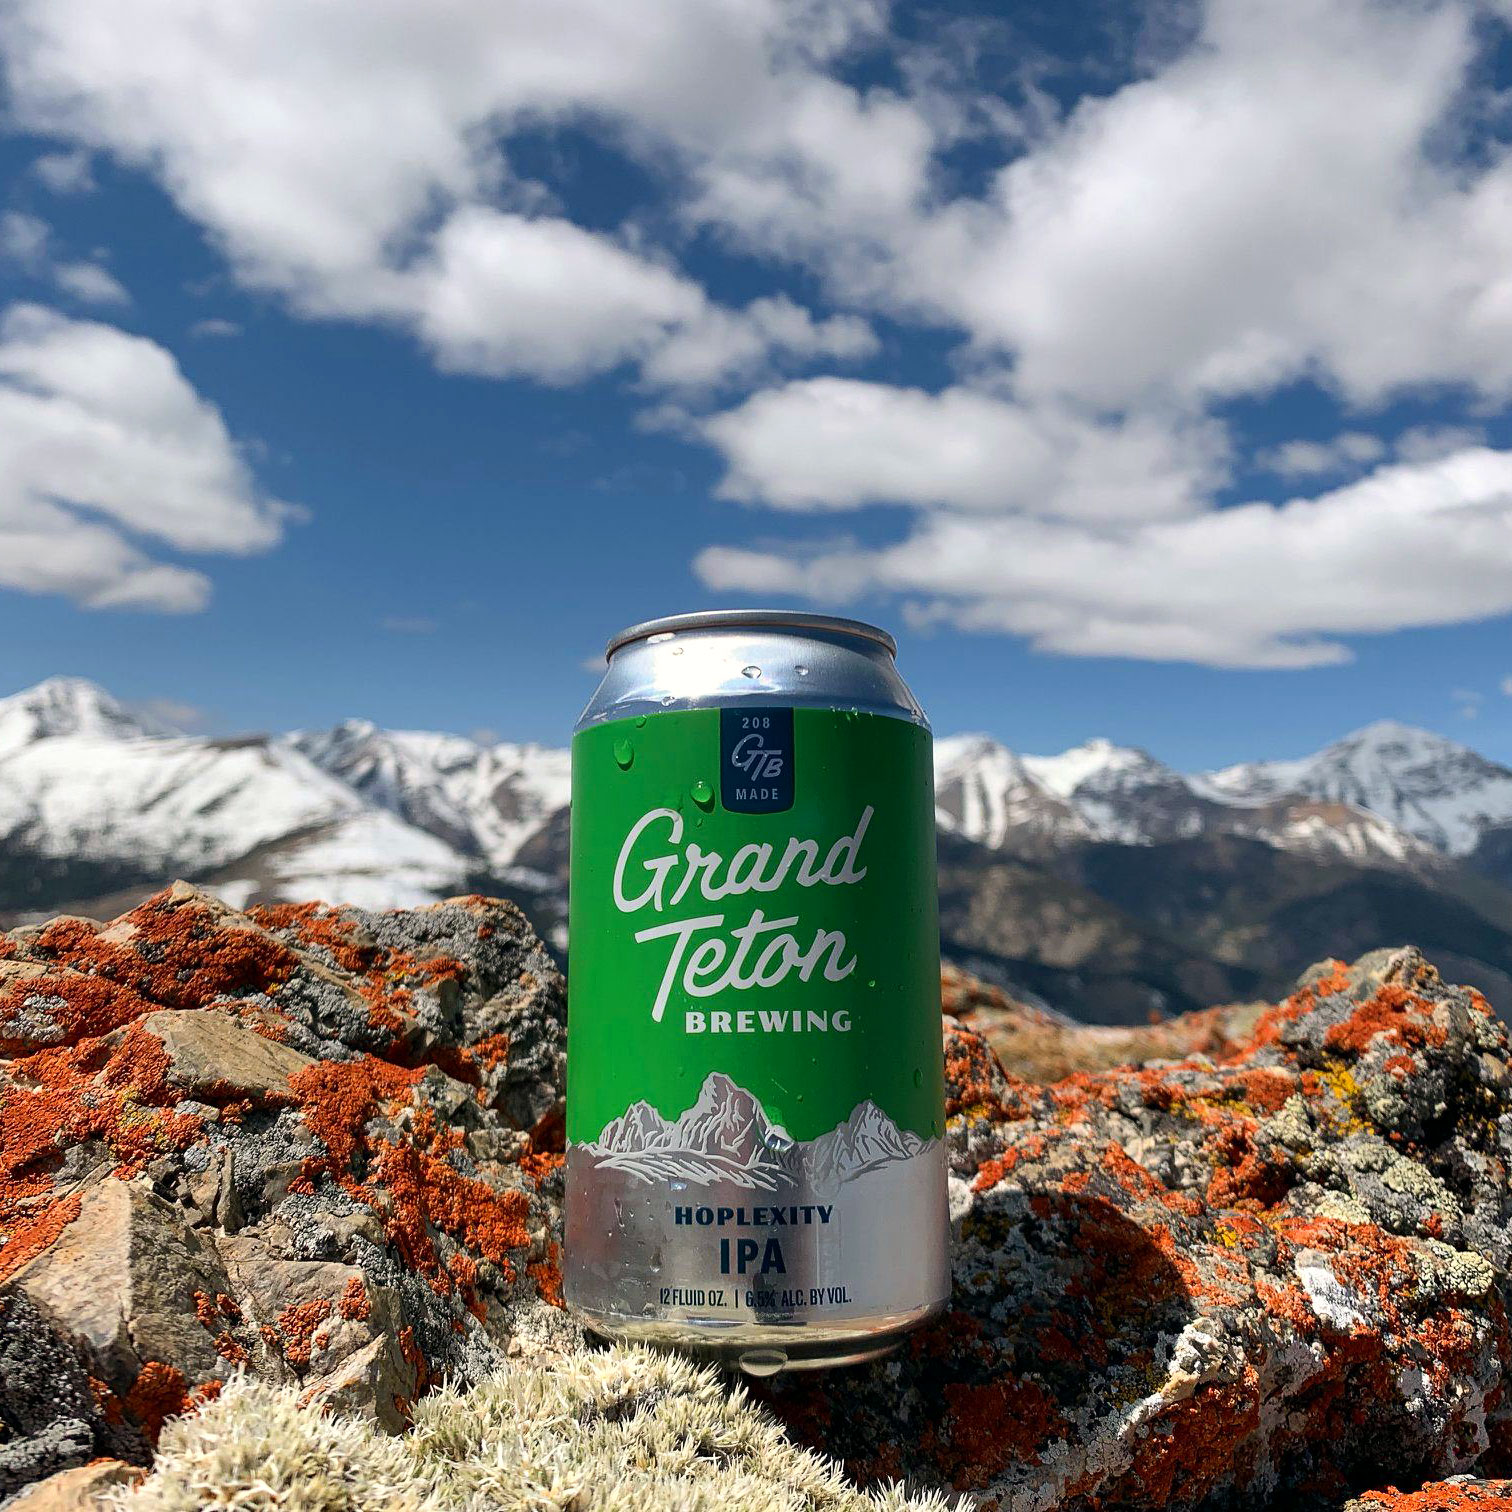 Grand Teton Hoplexity IPA